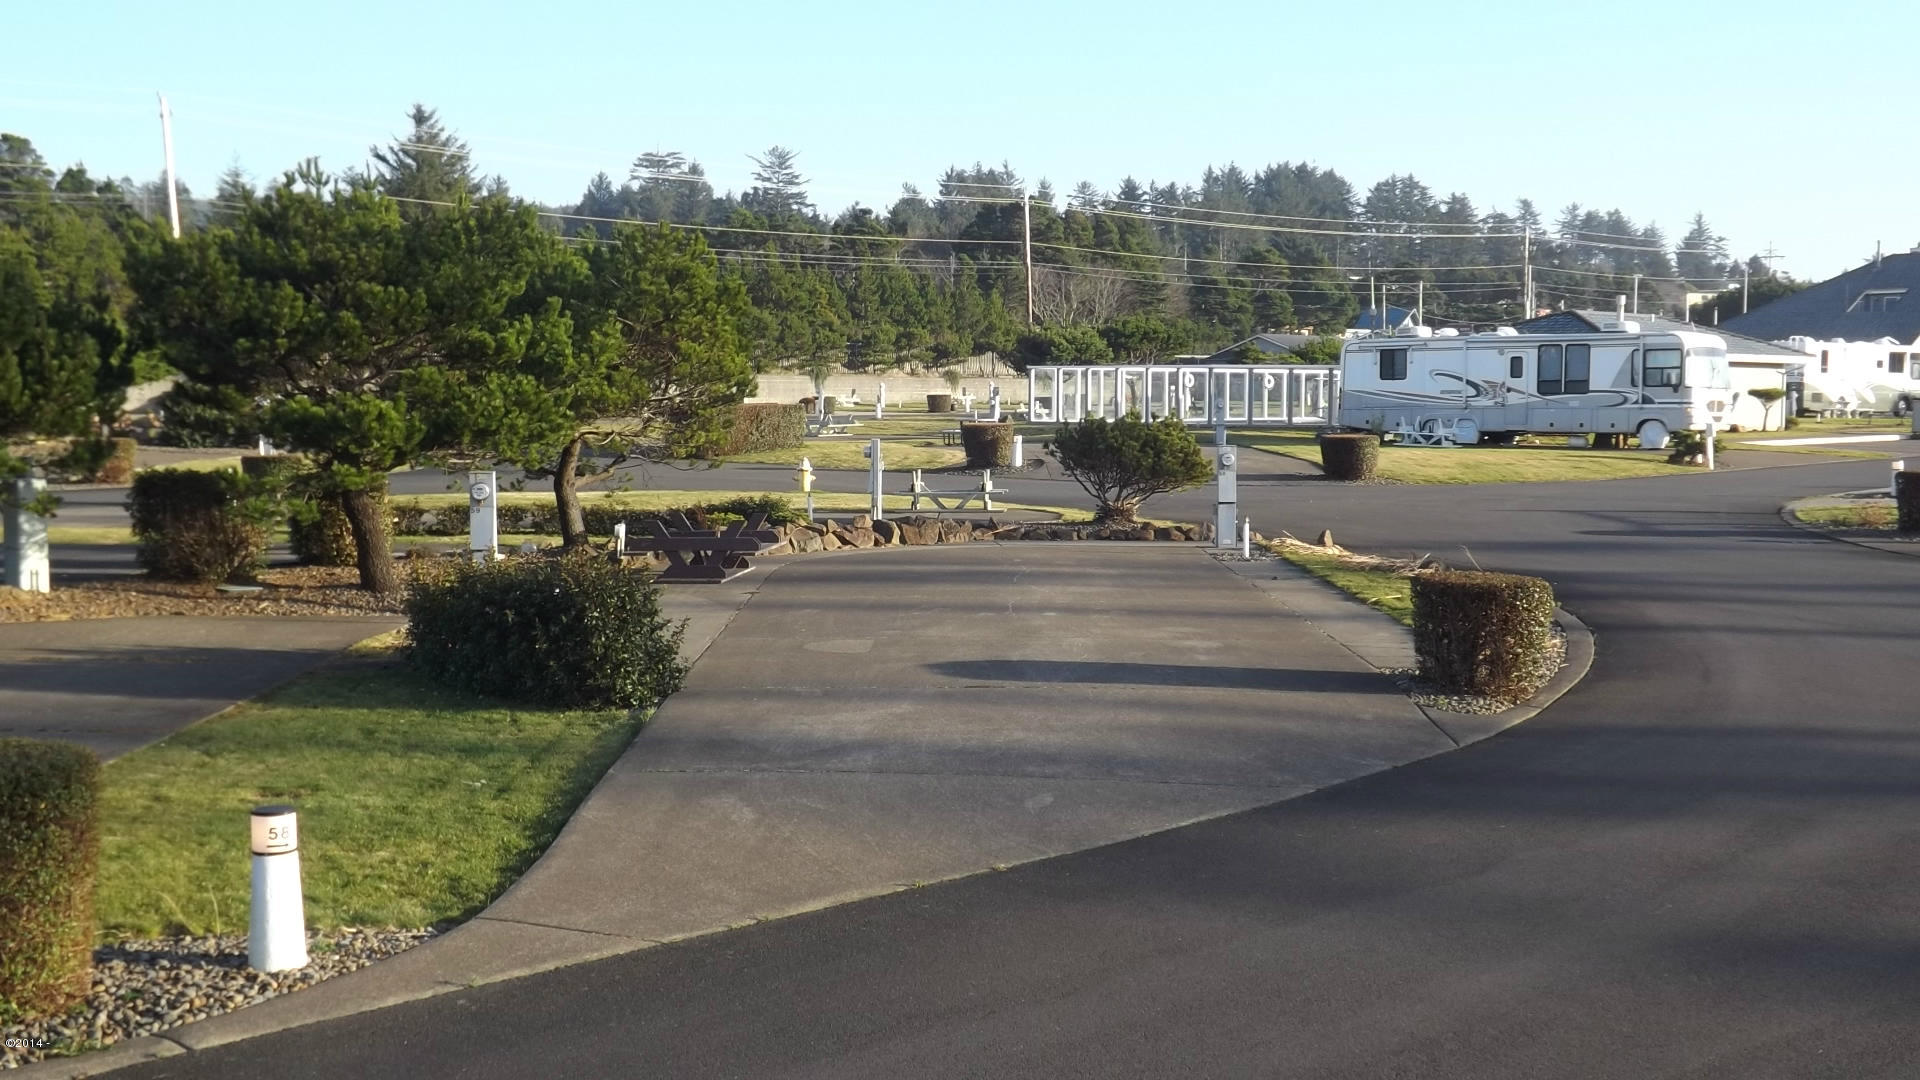 6225 N Coast Hwy Lot  58, Newport, OR 97365 - Lot 58 View from the street